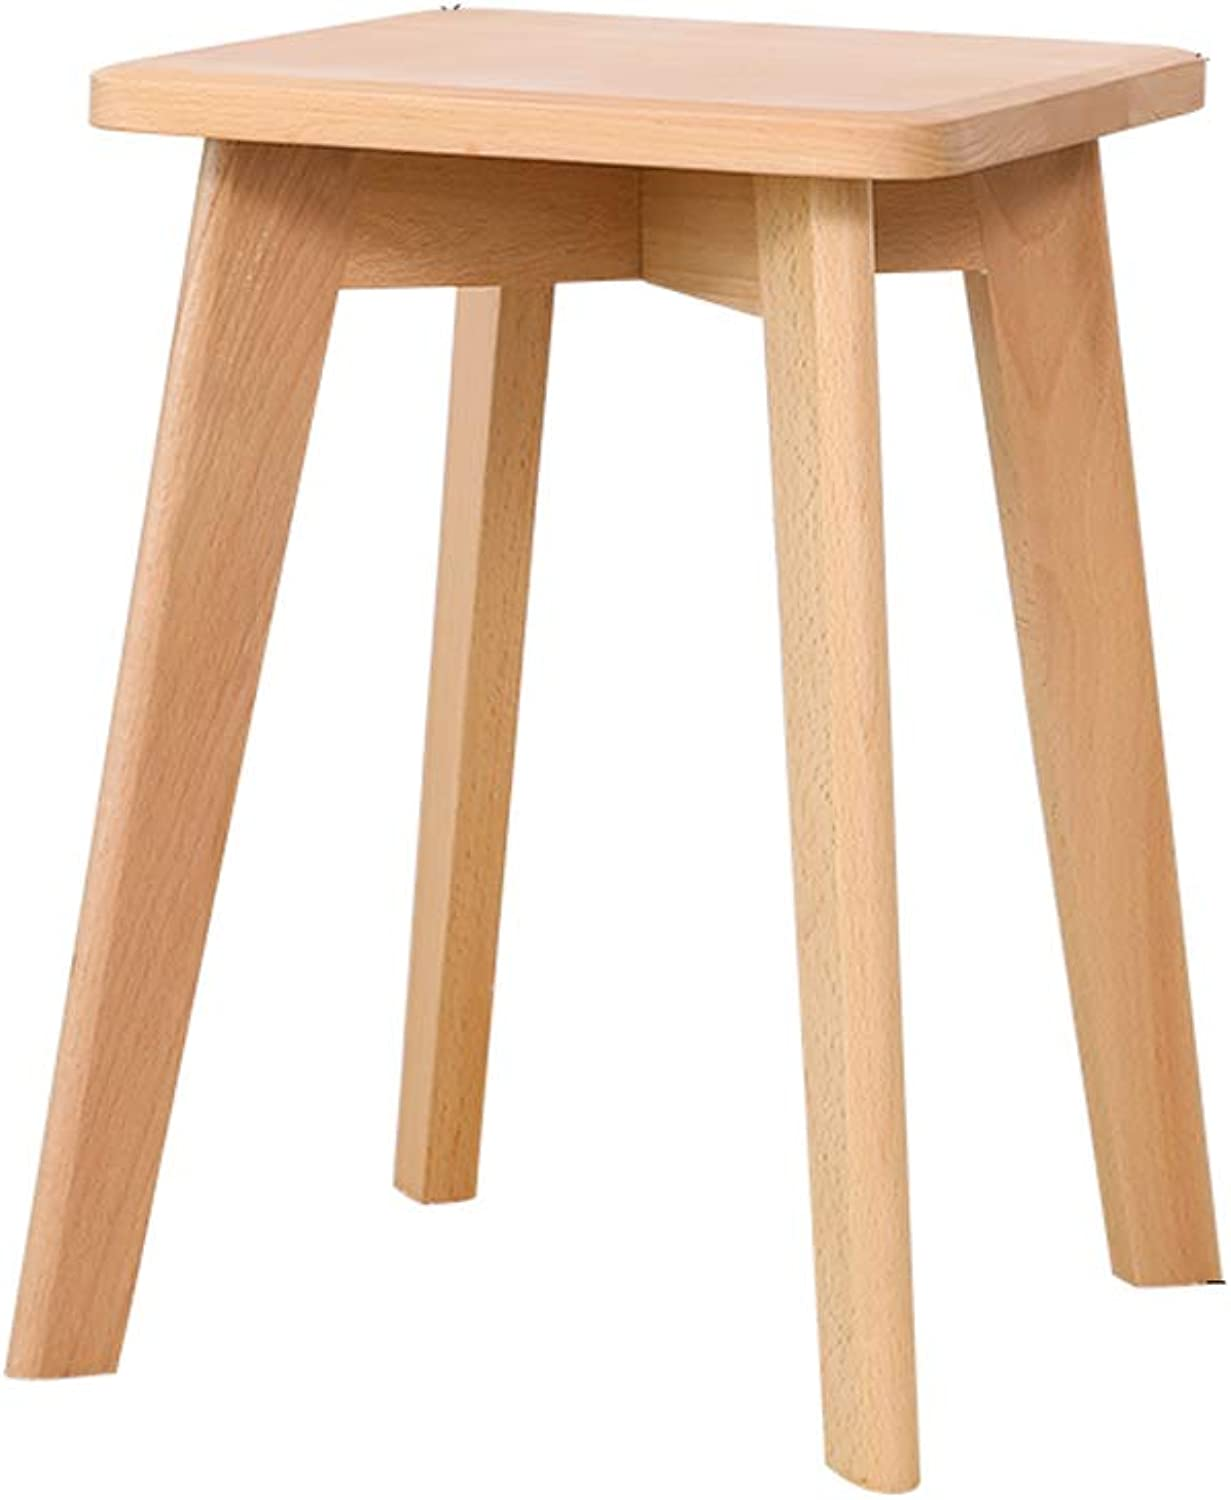 SYFO Household Solid Wood Stool, Simple Square Stool, Bedroom Dressing Stool, Stylish Dining Stool Stool (color   Yellow)